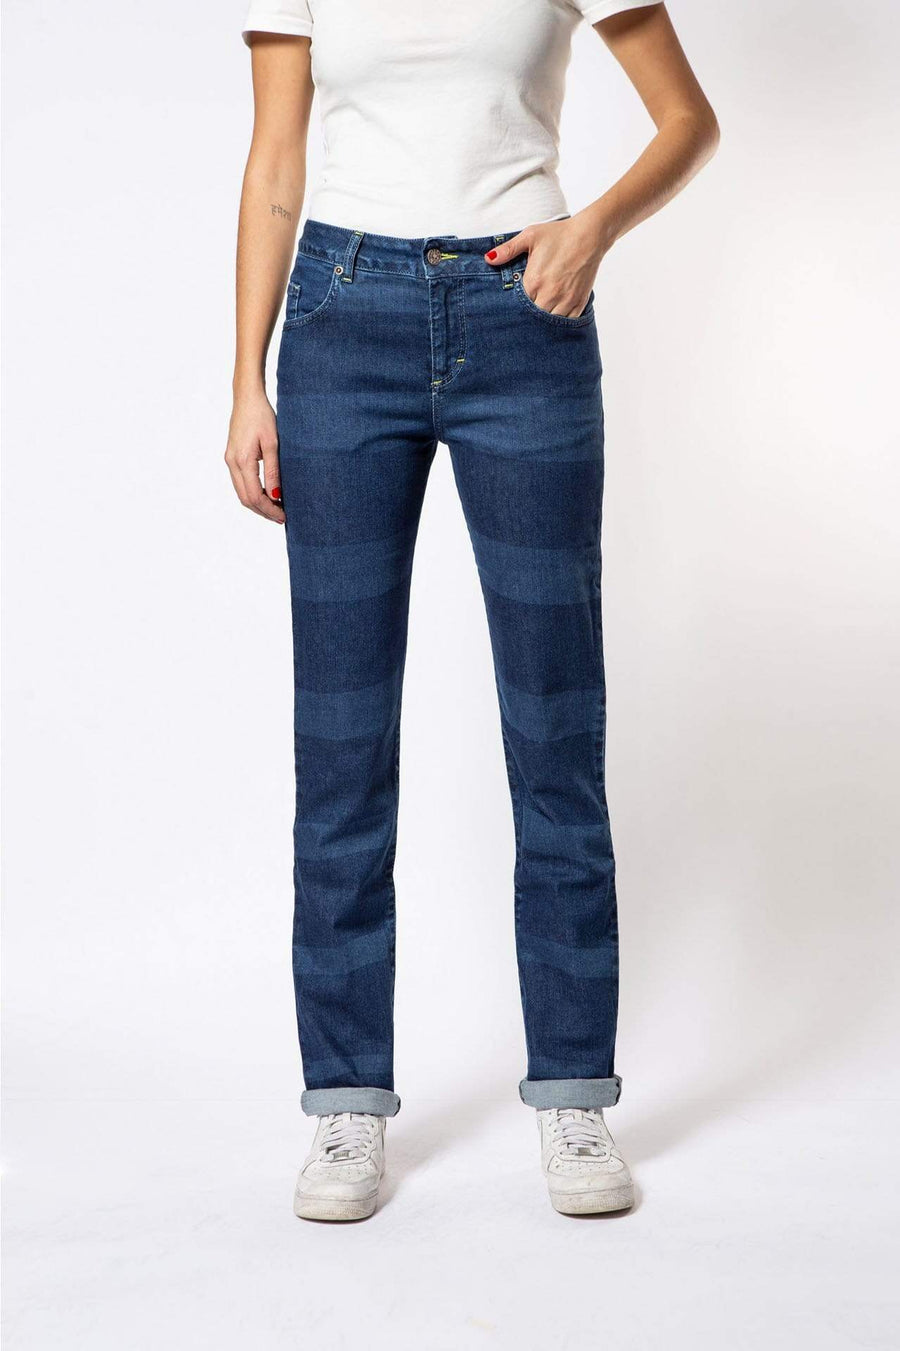 Par.co DENIM Femme Viola Straight Jeans mode durable mode éthique